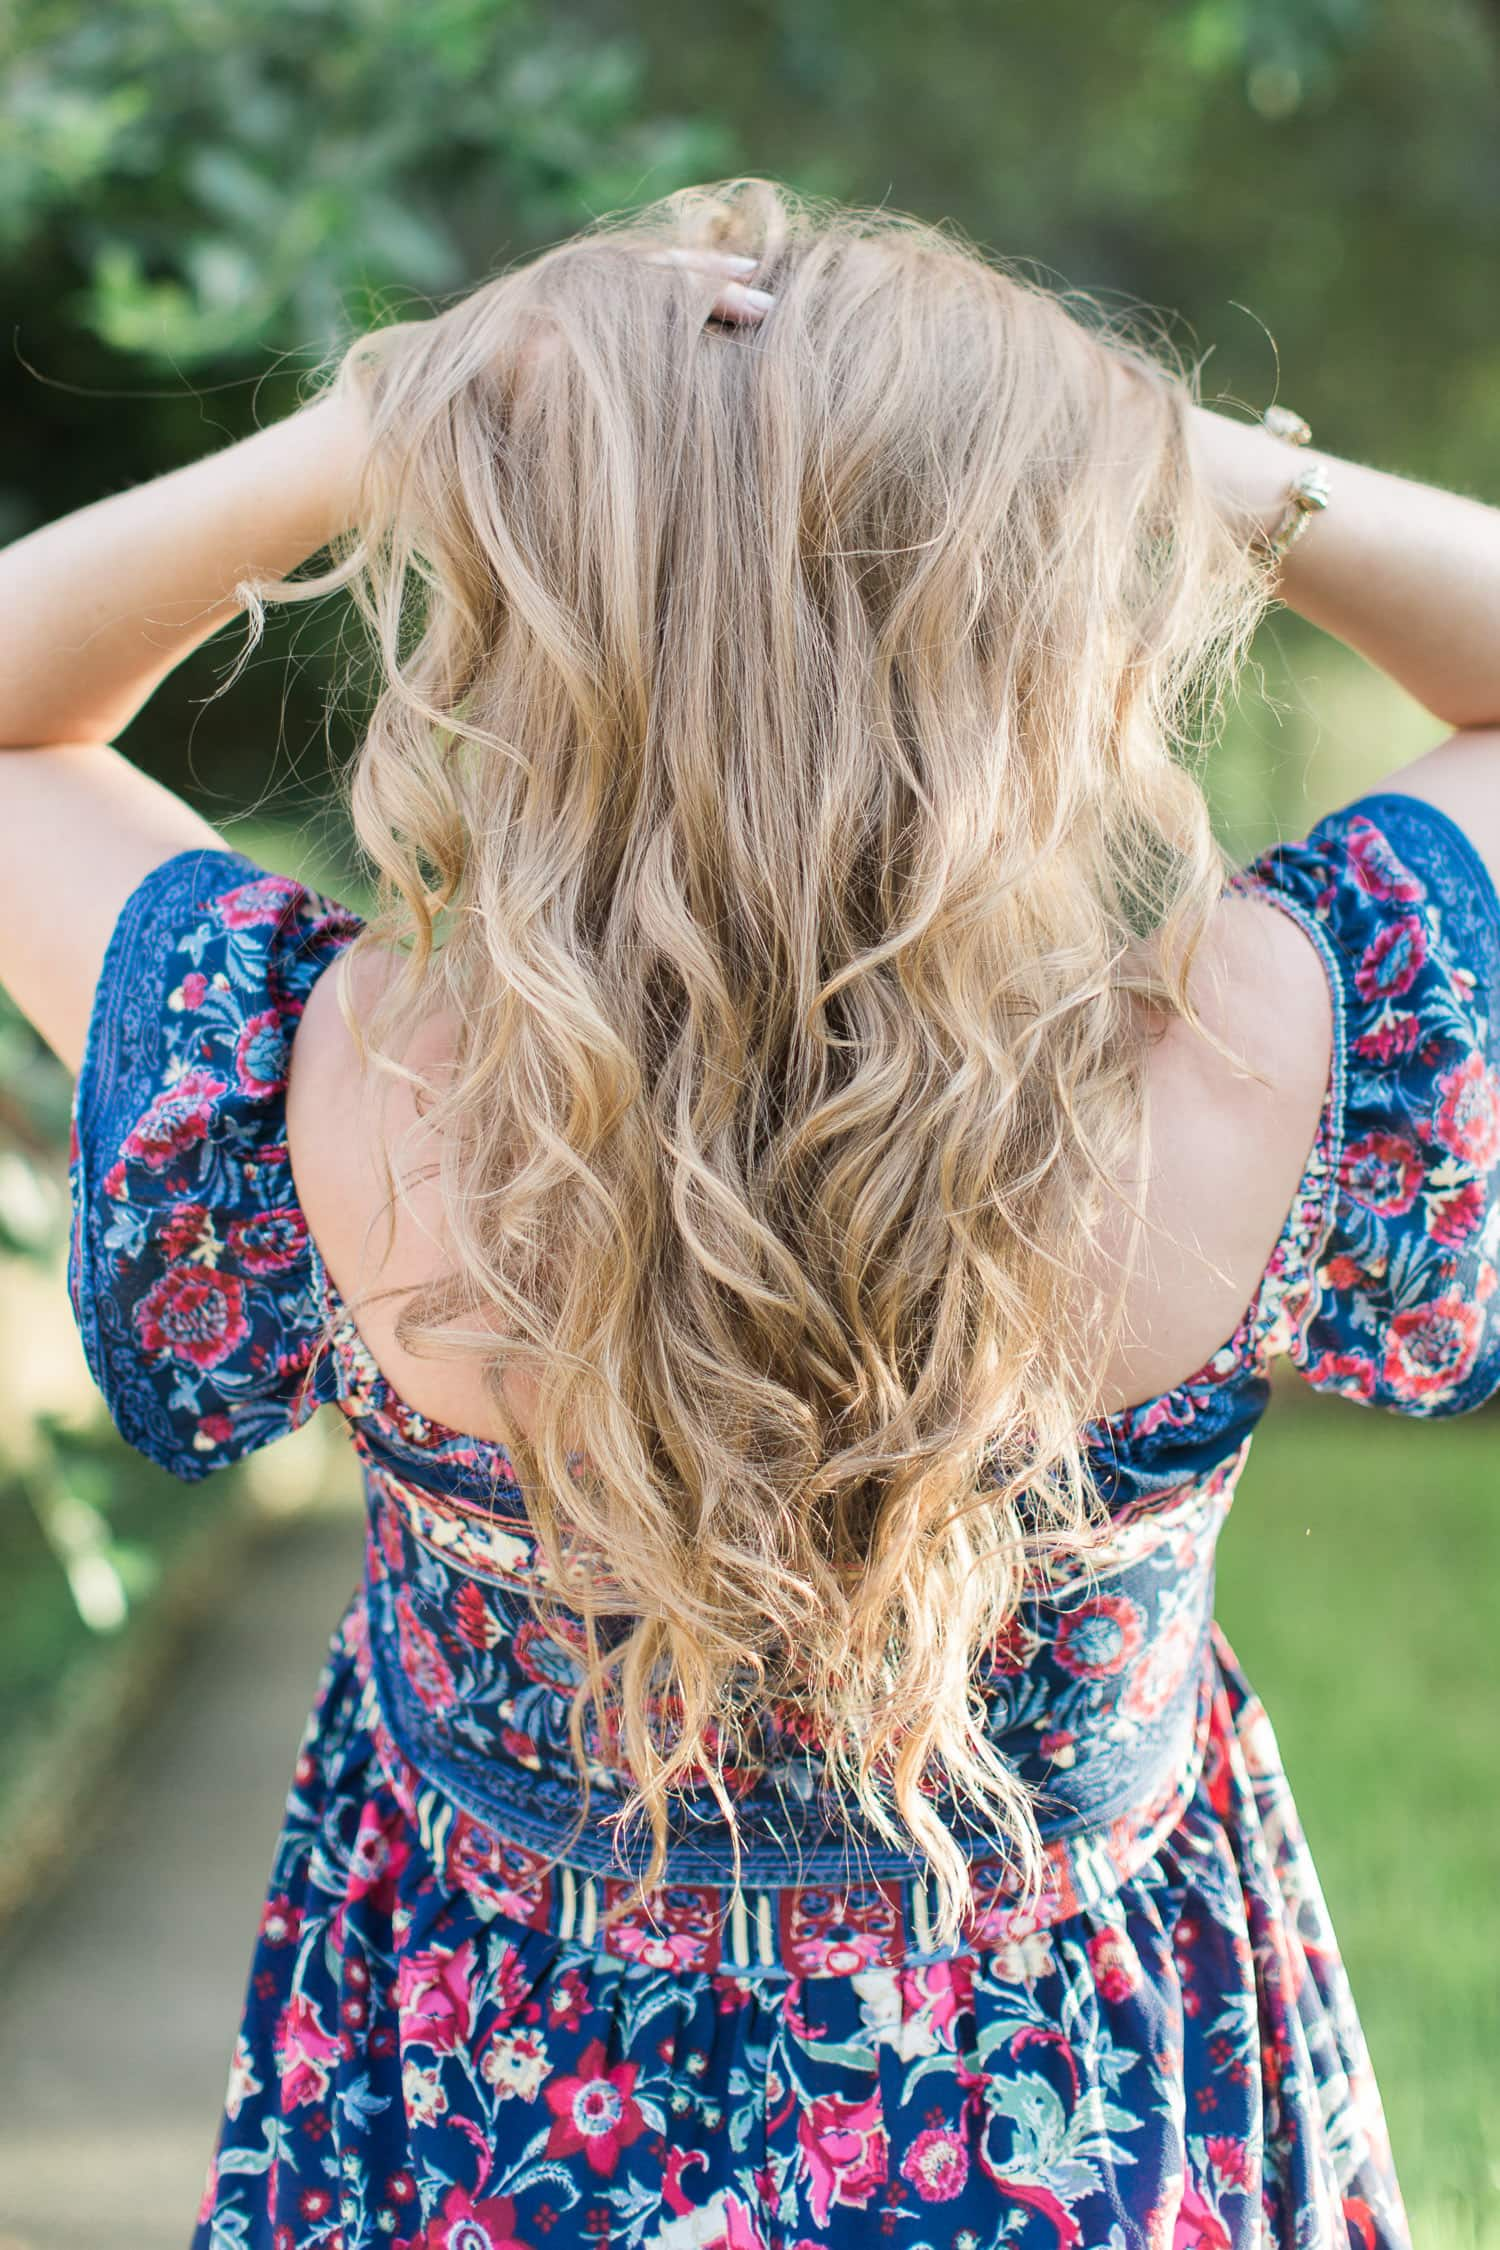 beat the heat with summer essentials, how to use kapow dry shampoo beauty blogger, summer sundress ashley brooke nicholas